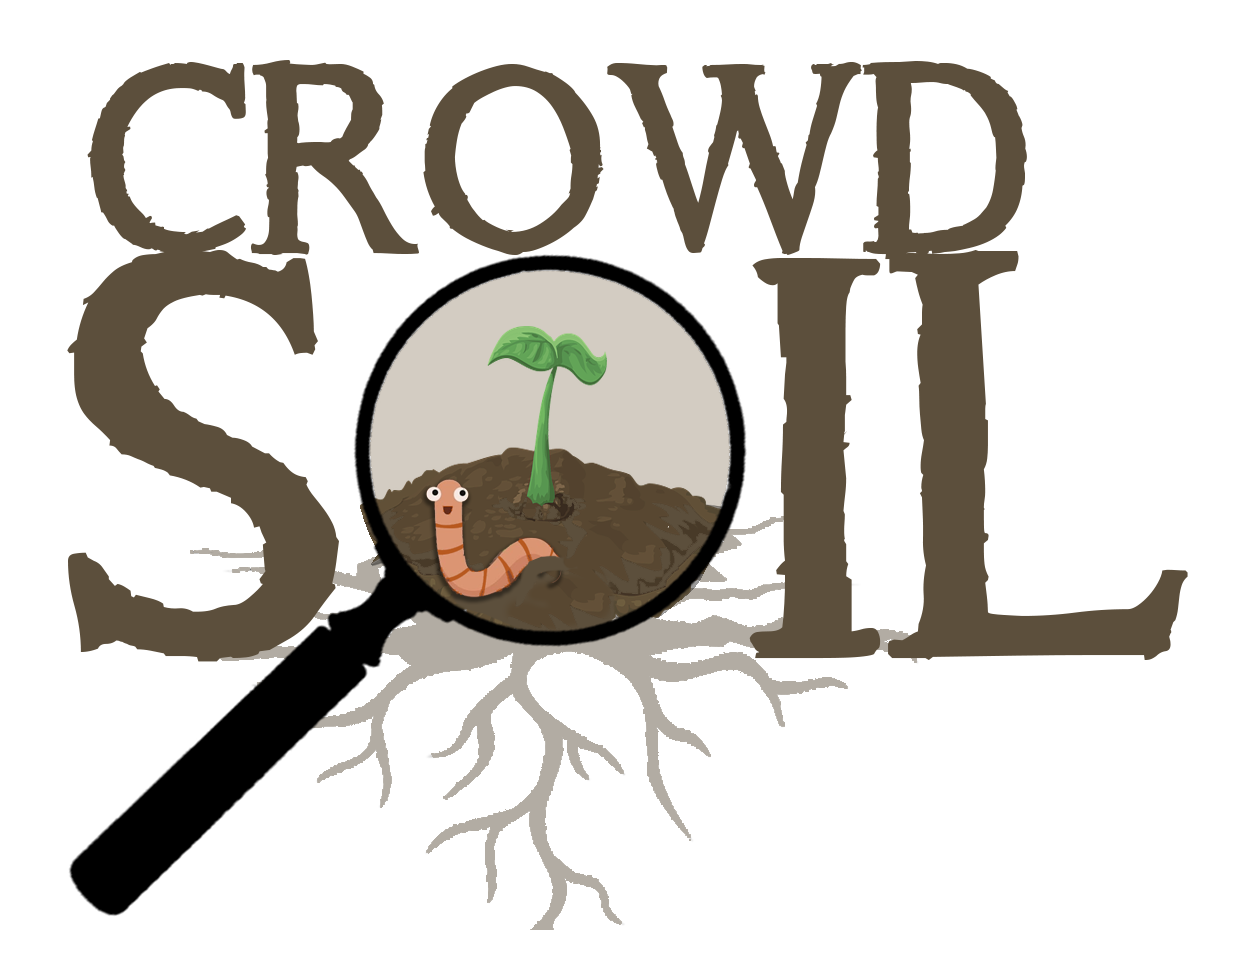 Wednesday clipart half way. Sdg solution space crowdsoil